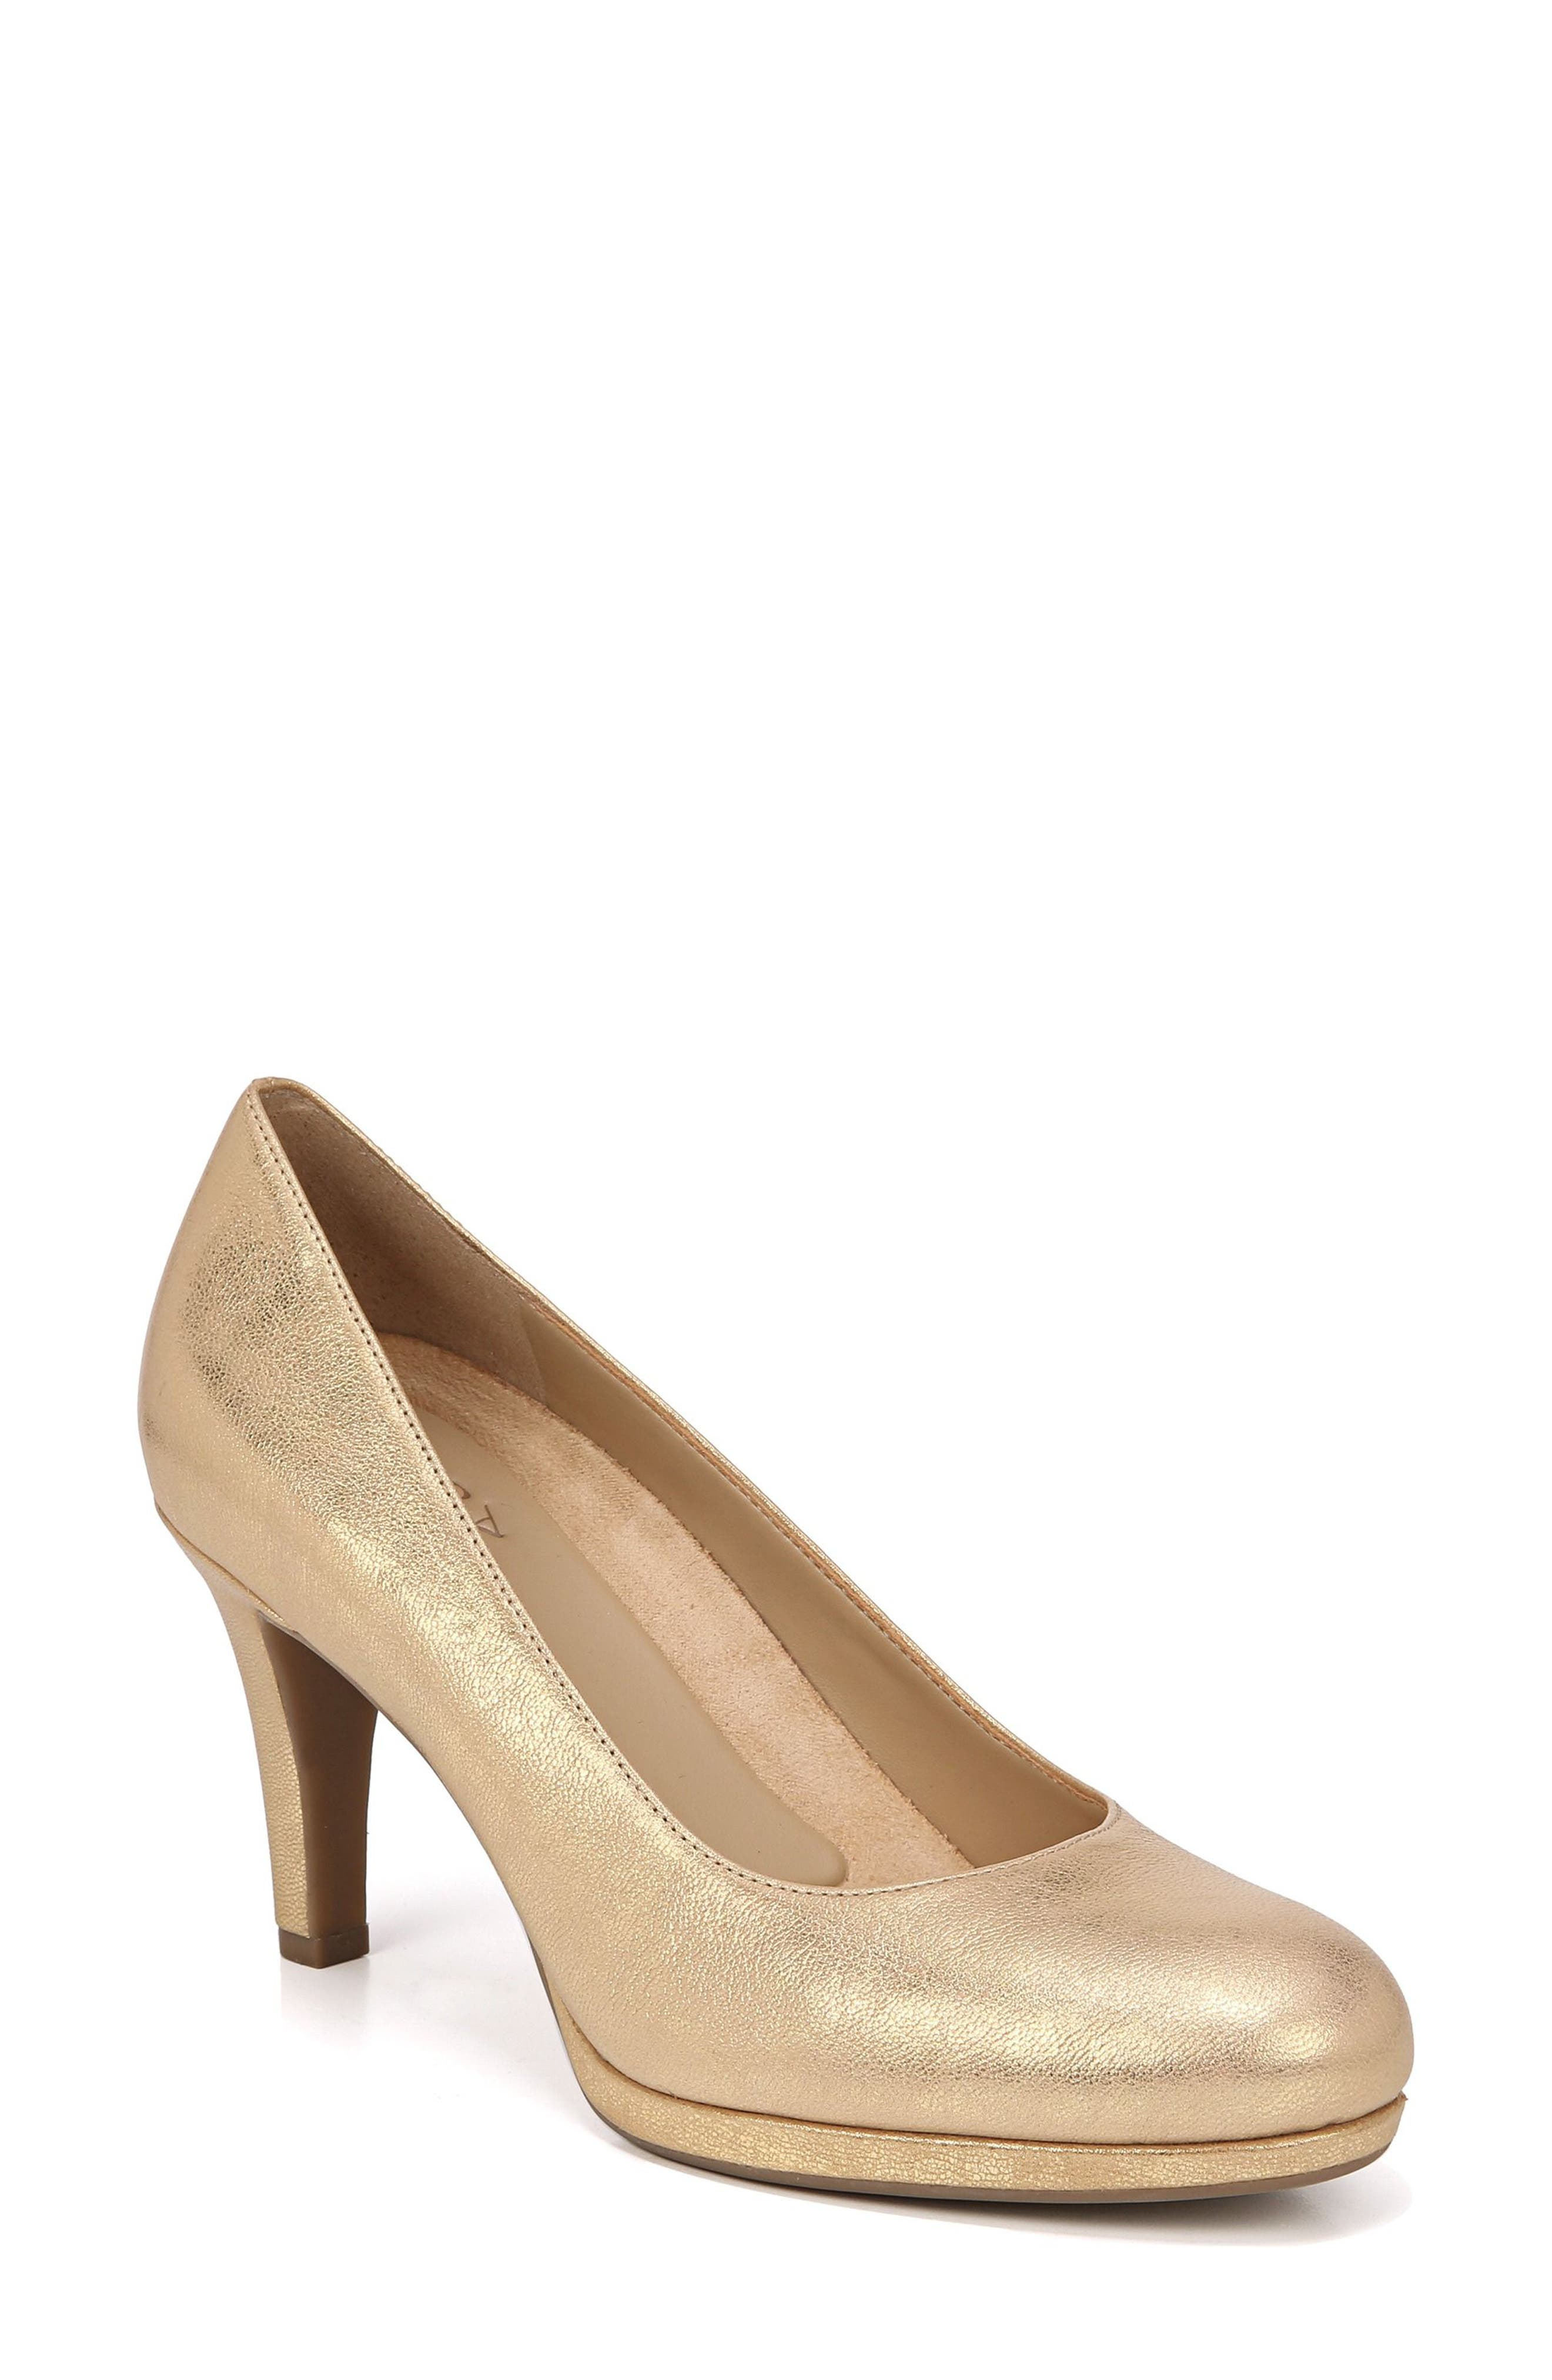 aca7faf916a72 Naturalizer  Michelle  Almond Toe Pump